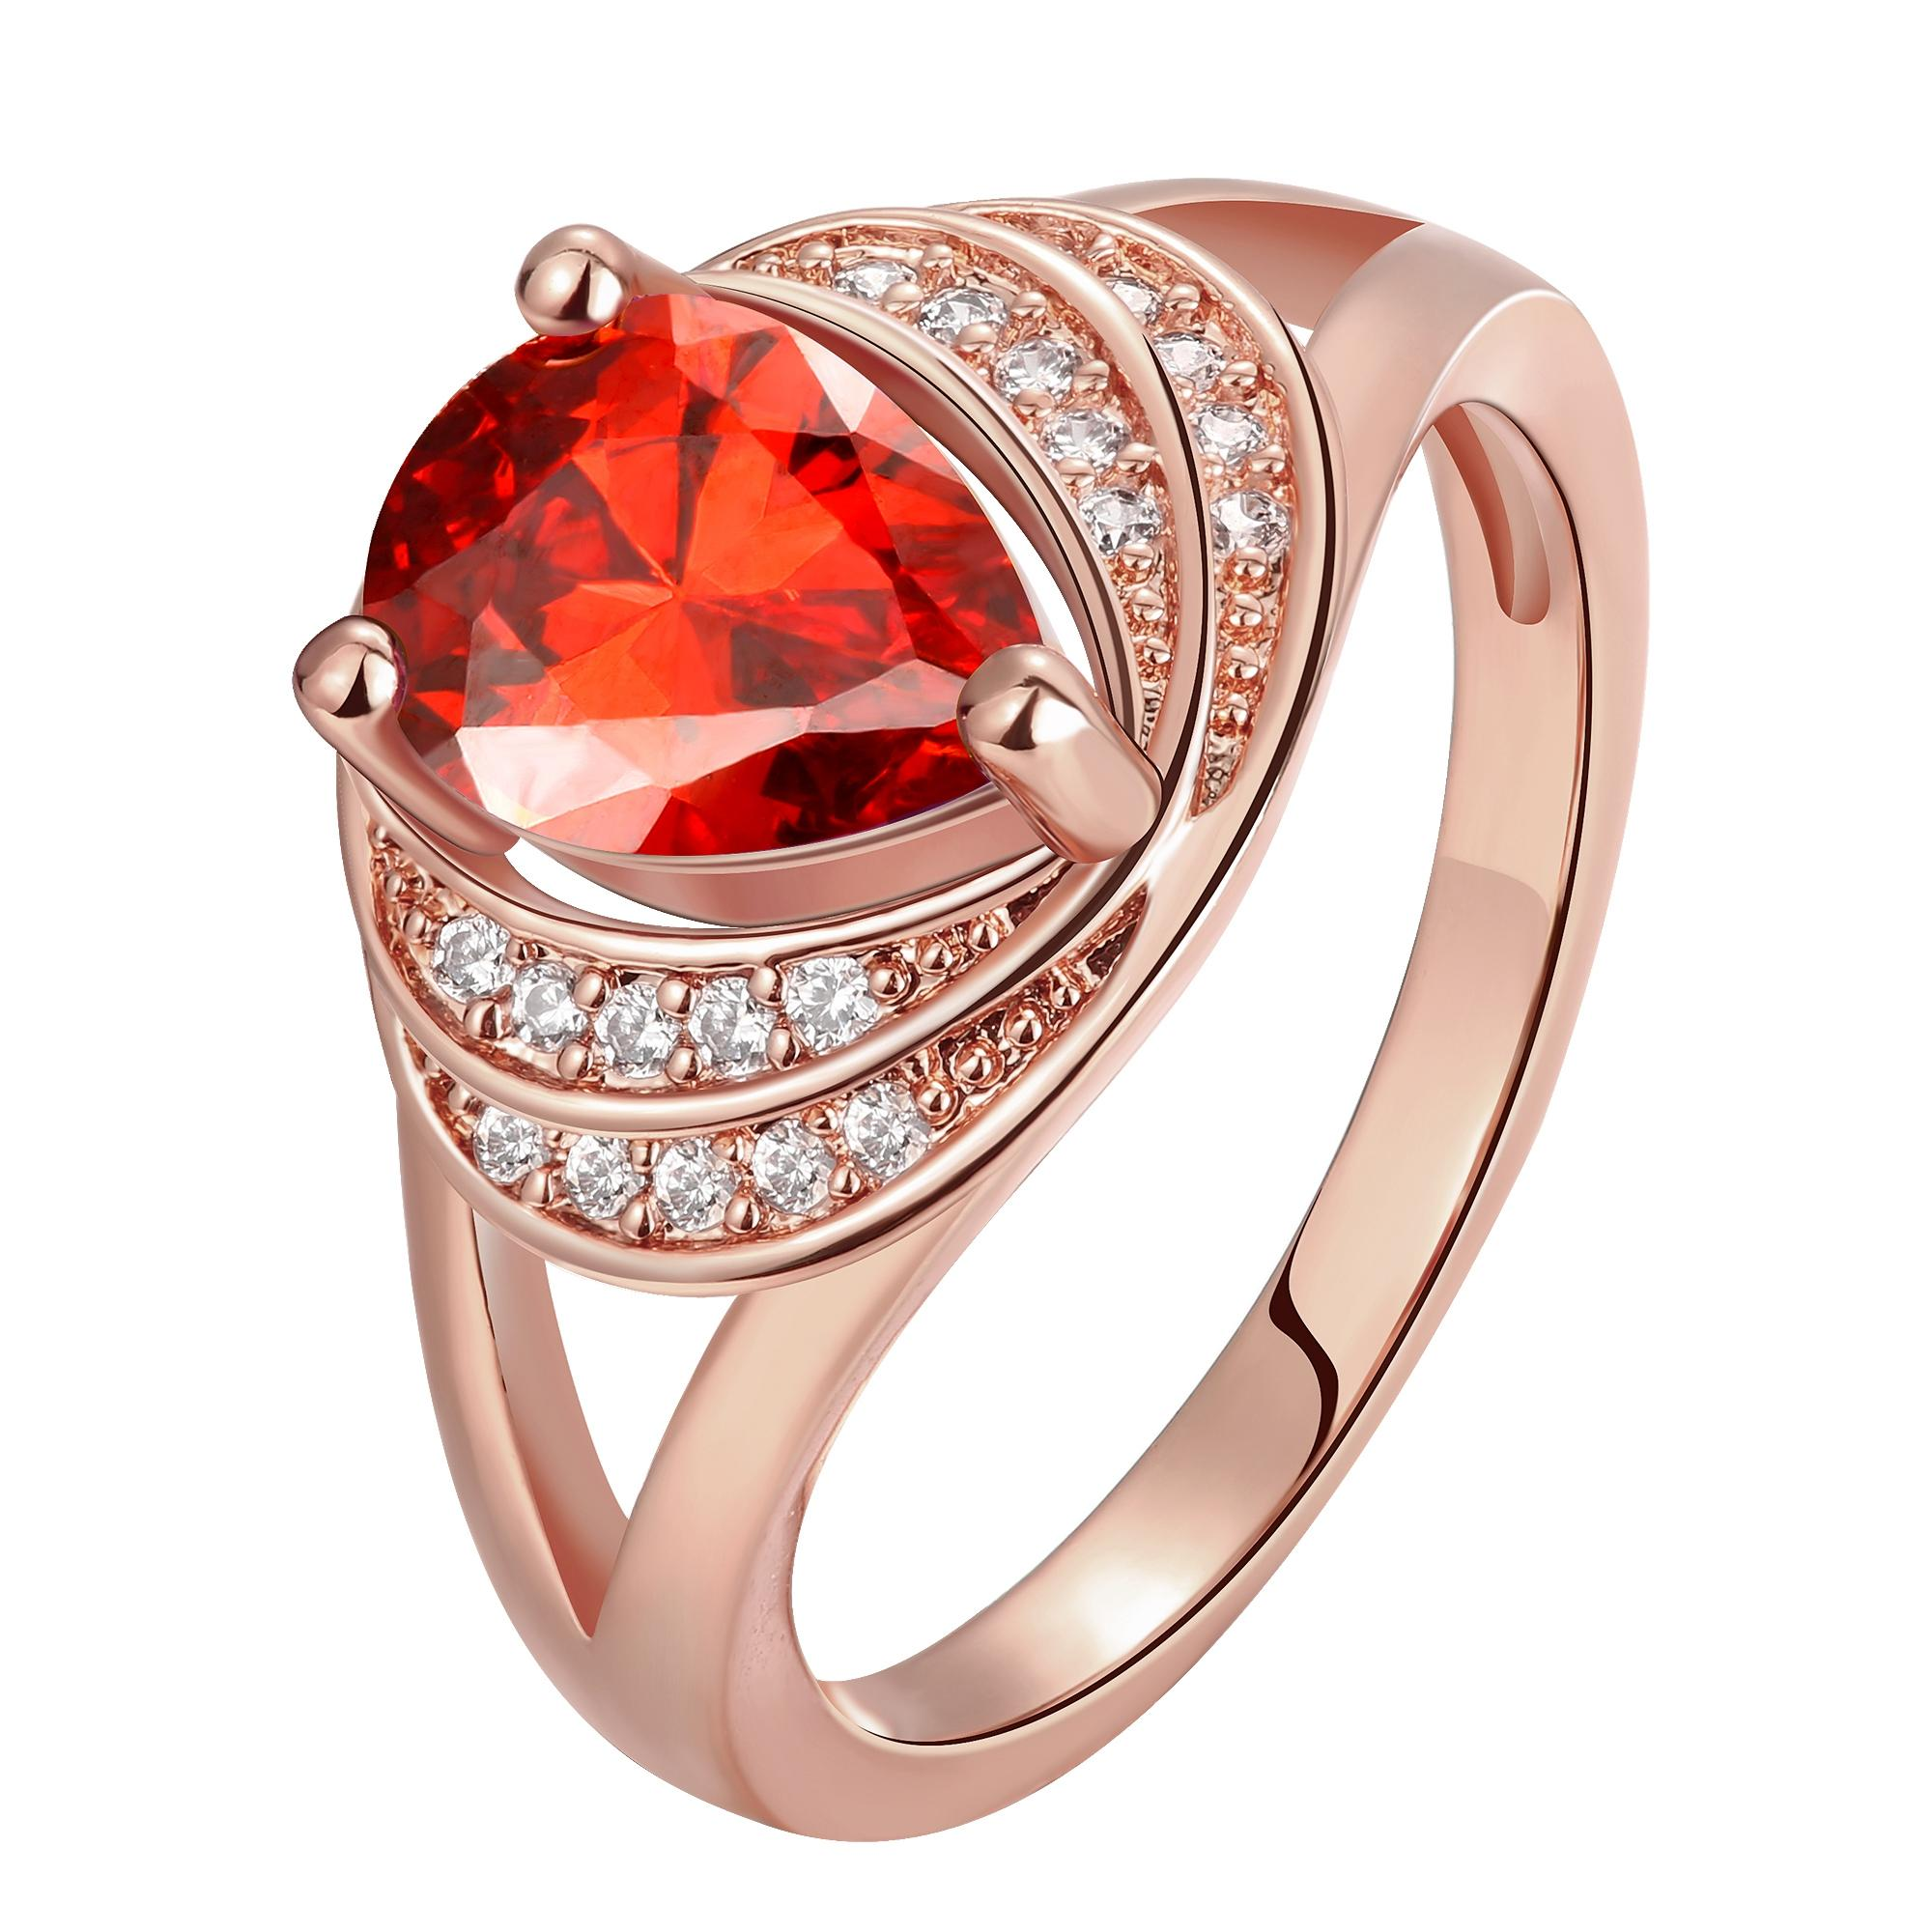 rubydding red gold for full diamond rings ruby images green ring set new design of ebay recommendations size cz sets silver wedding sterling